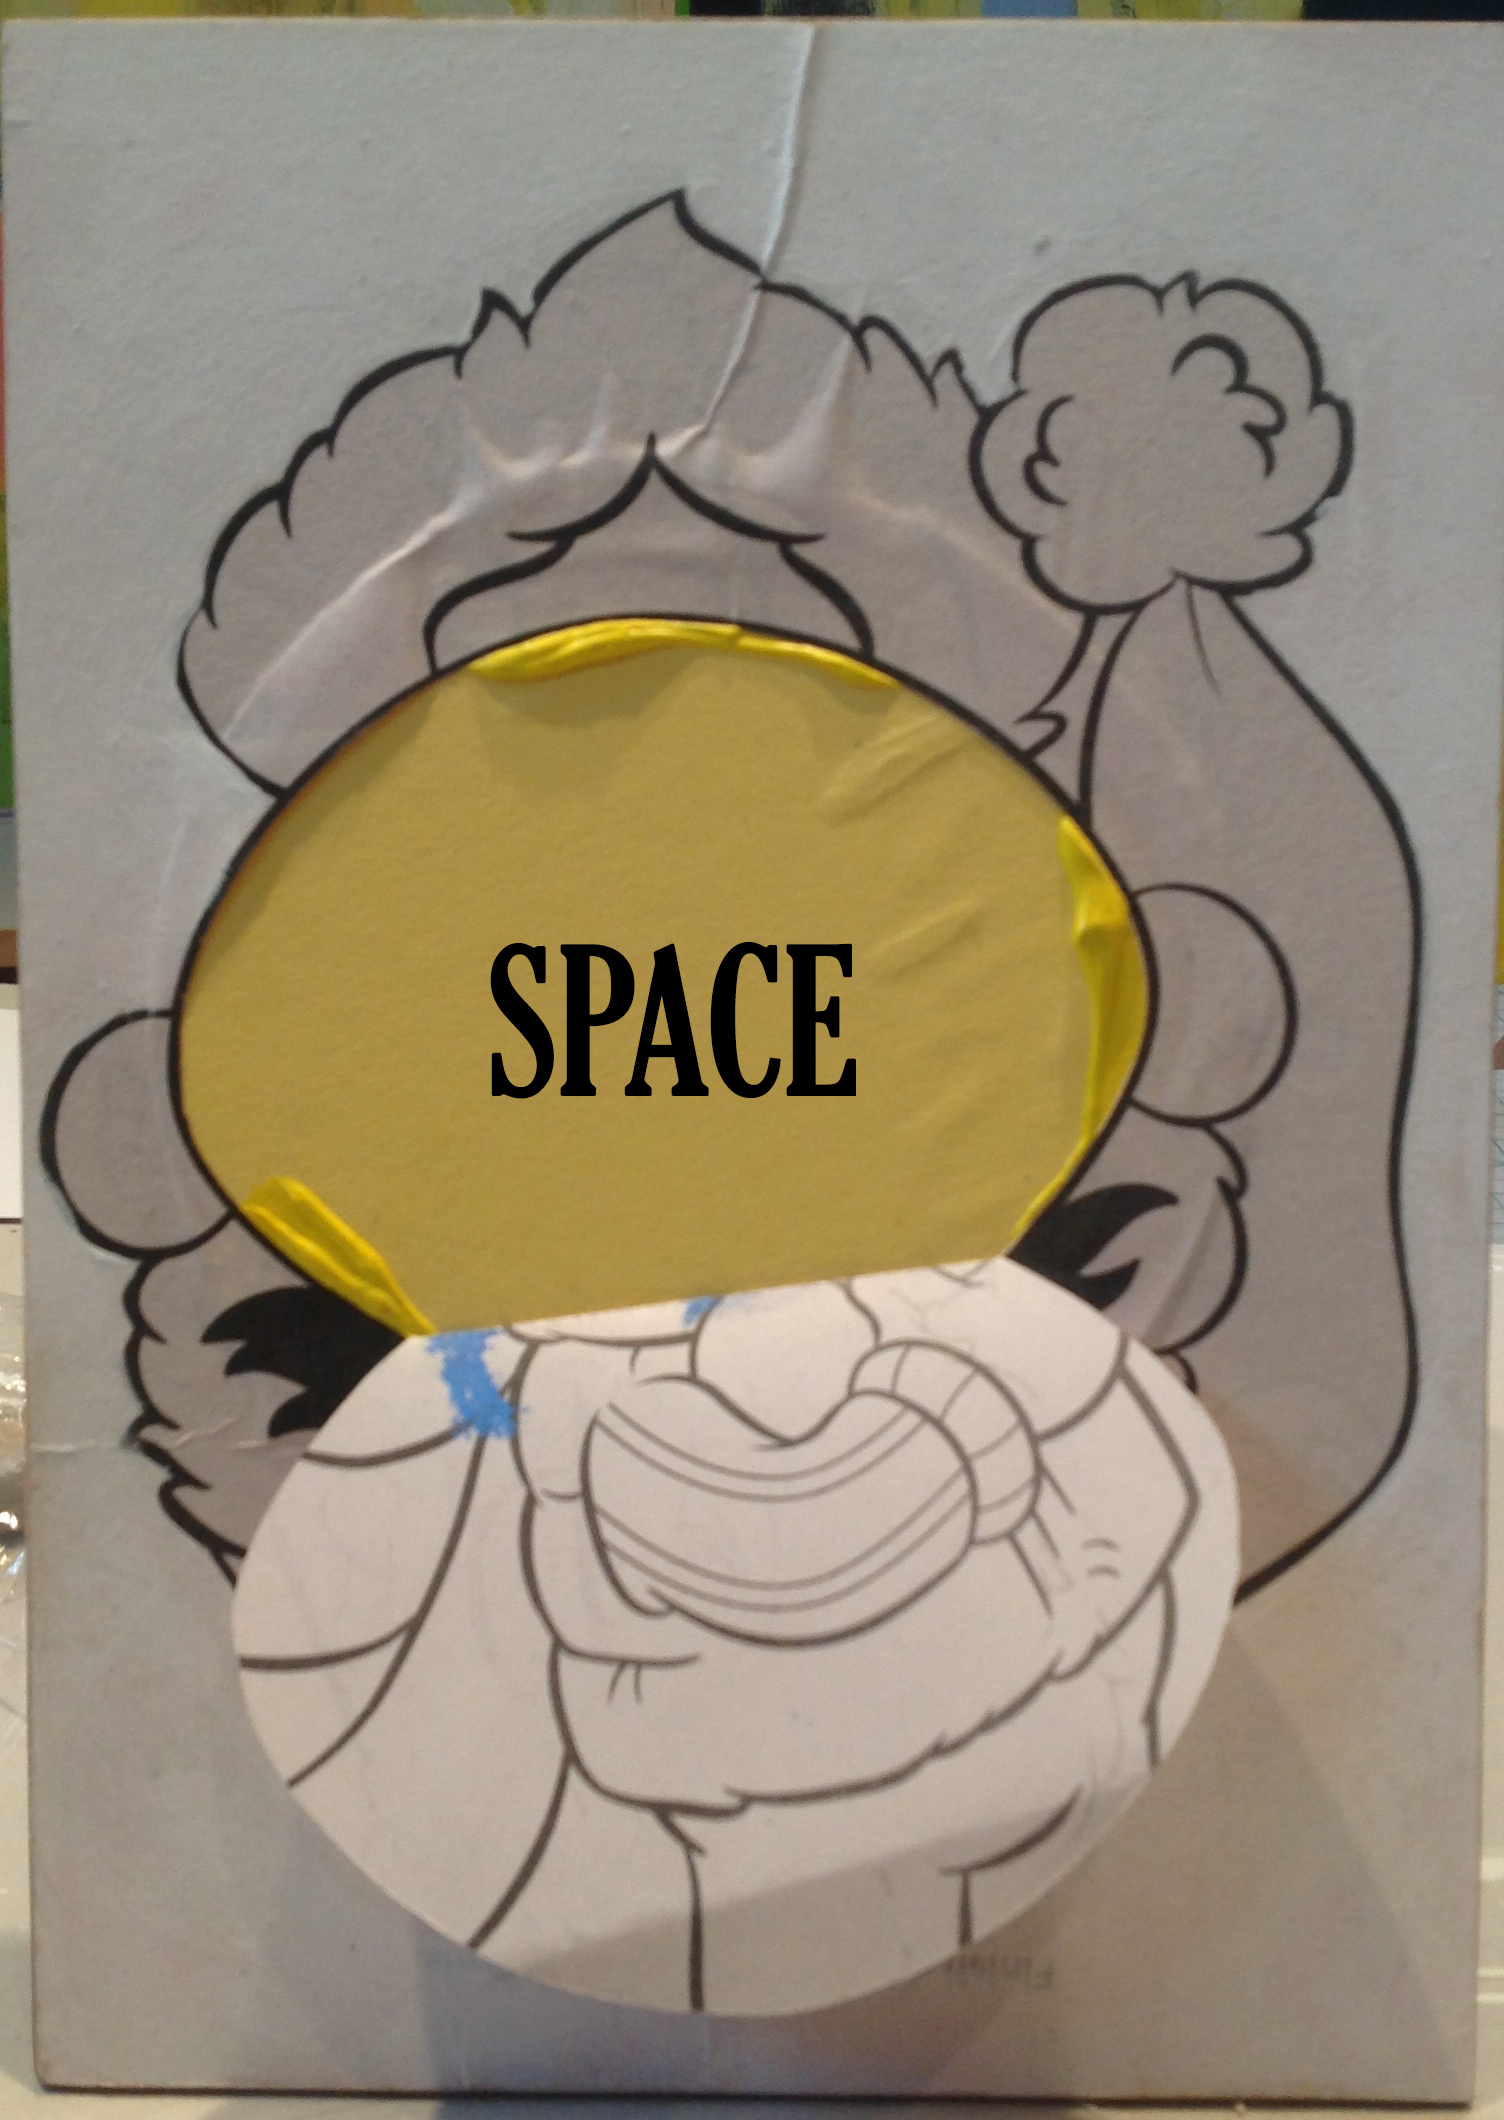 slapface coloring book3 copy.jpg